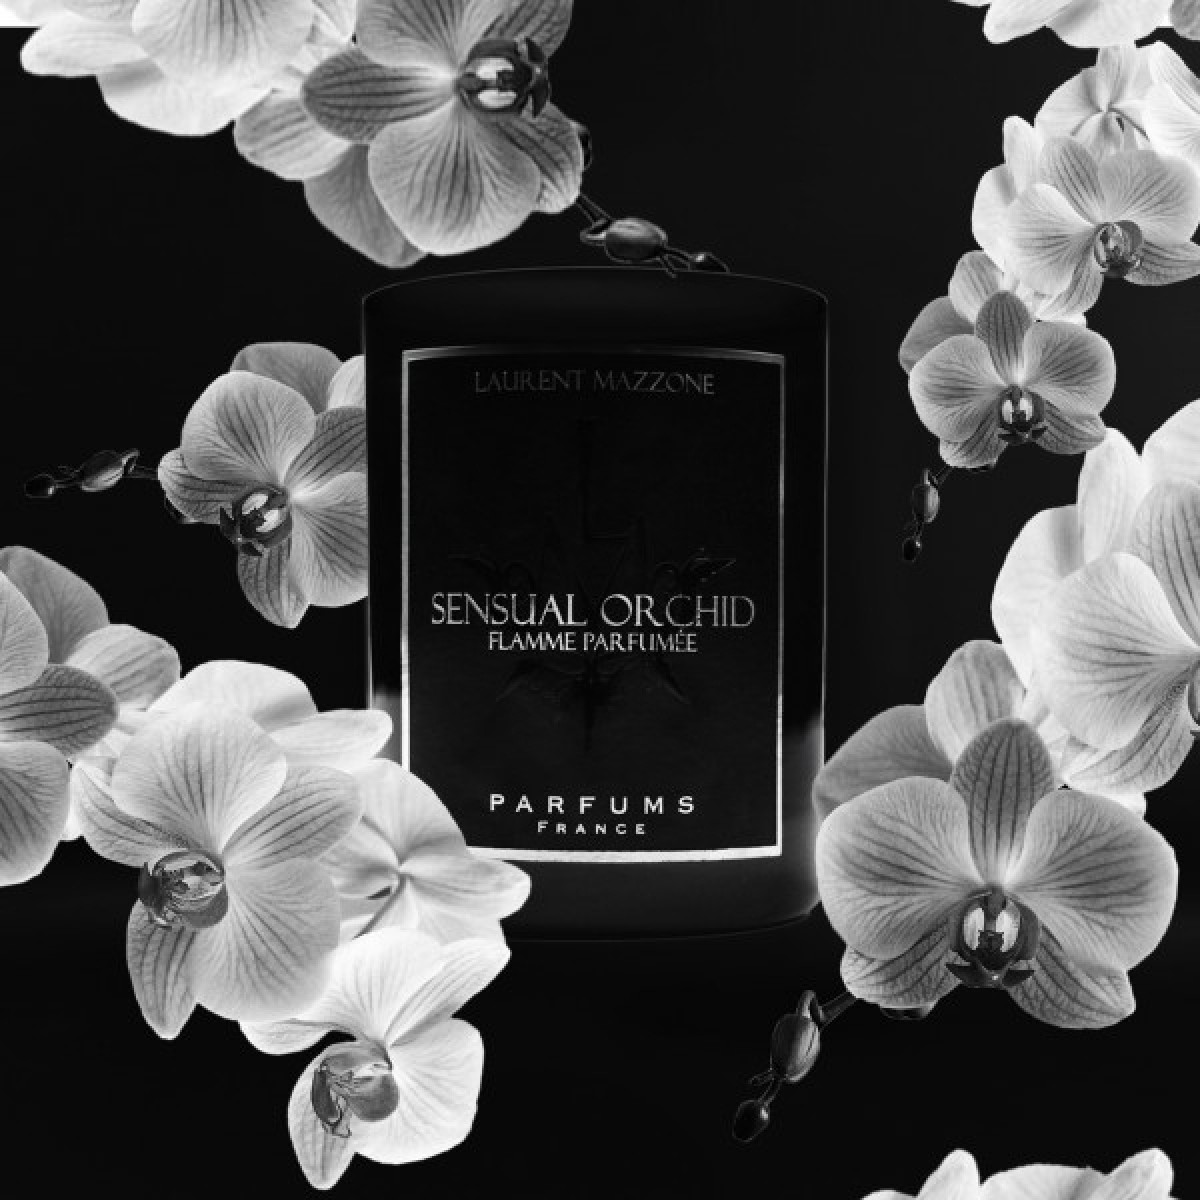 SENSUAL ORCHID - LM Parfums